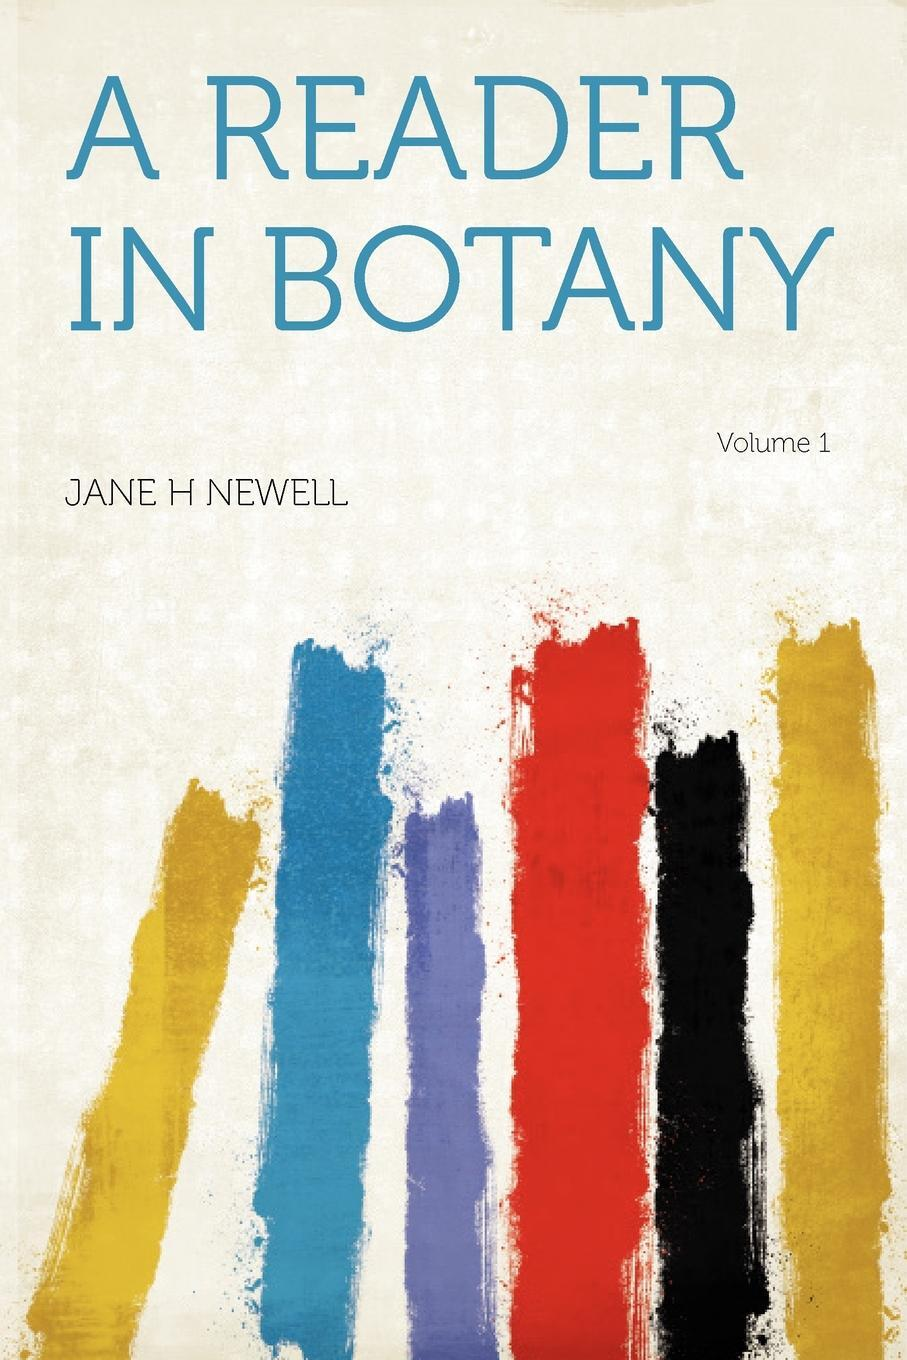 A Reader in Botany Volume 1. Jane H Newell